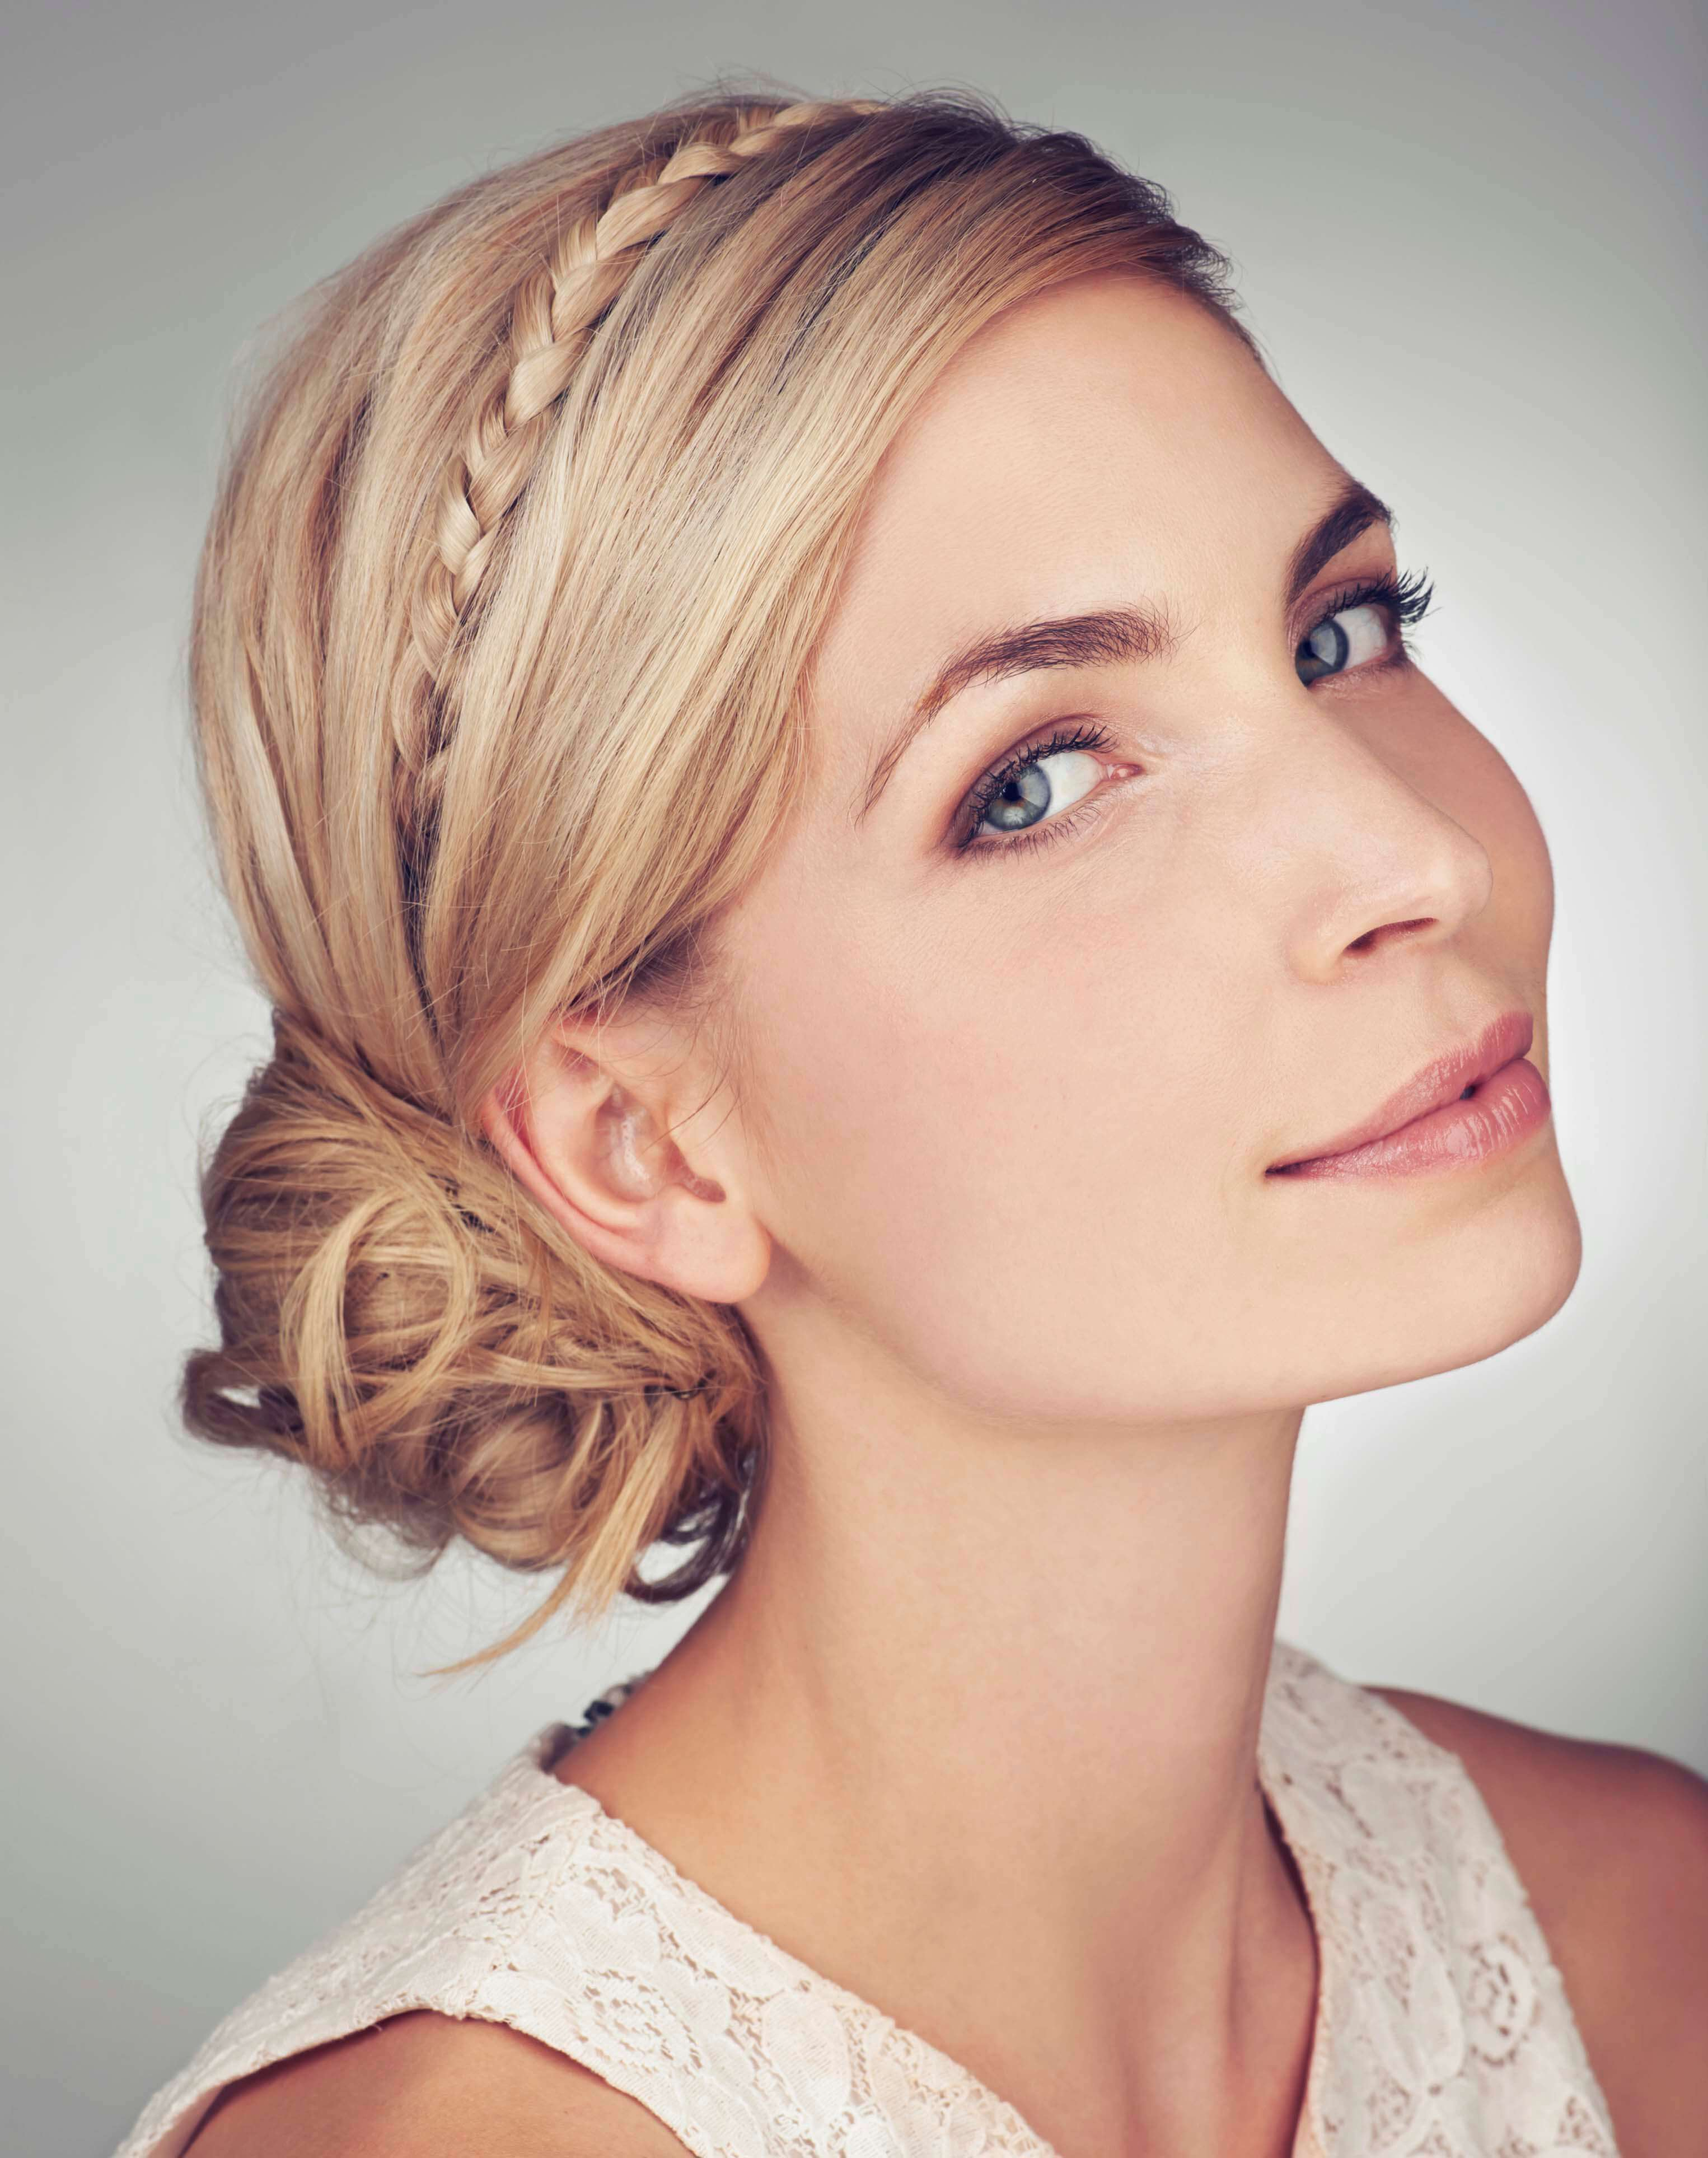 blonde lady with plaited chignon hairstyle